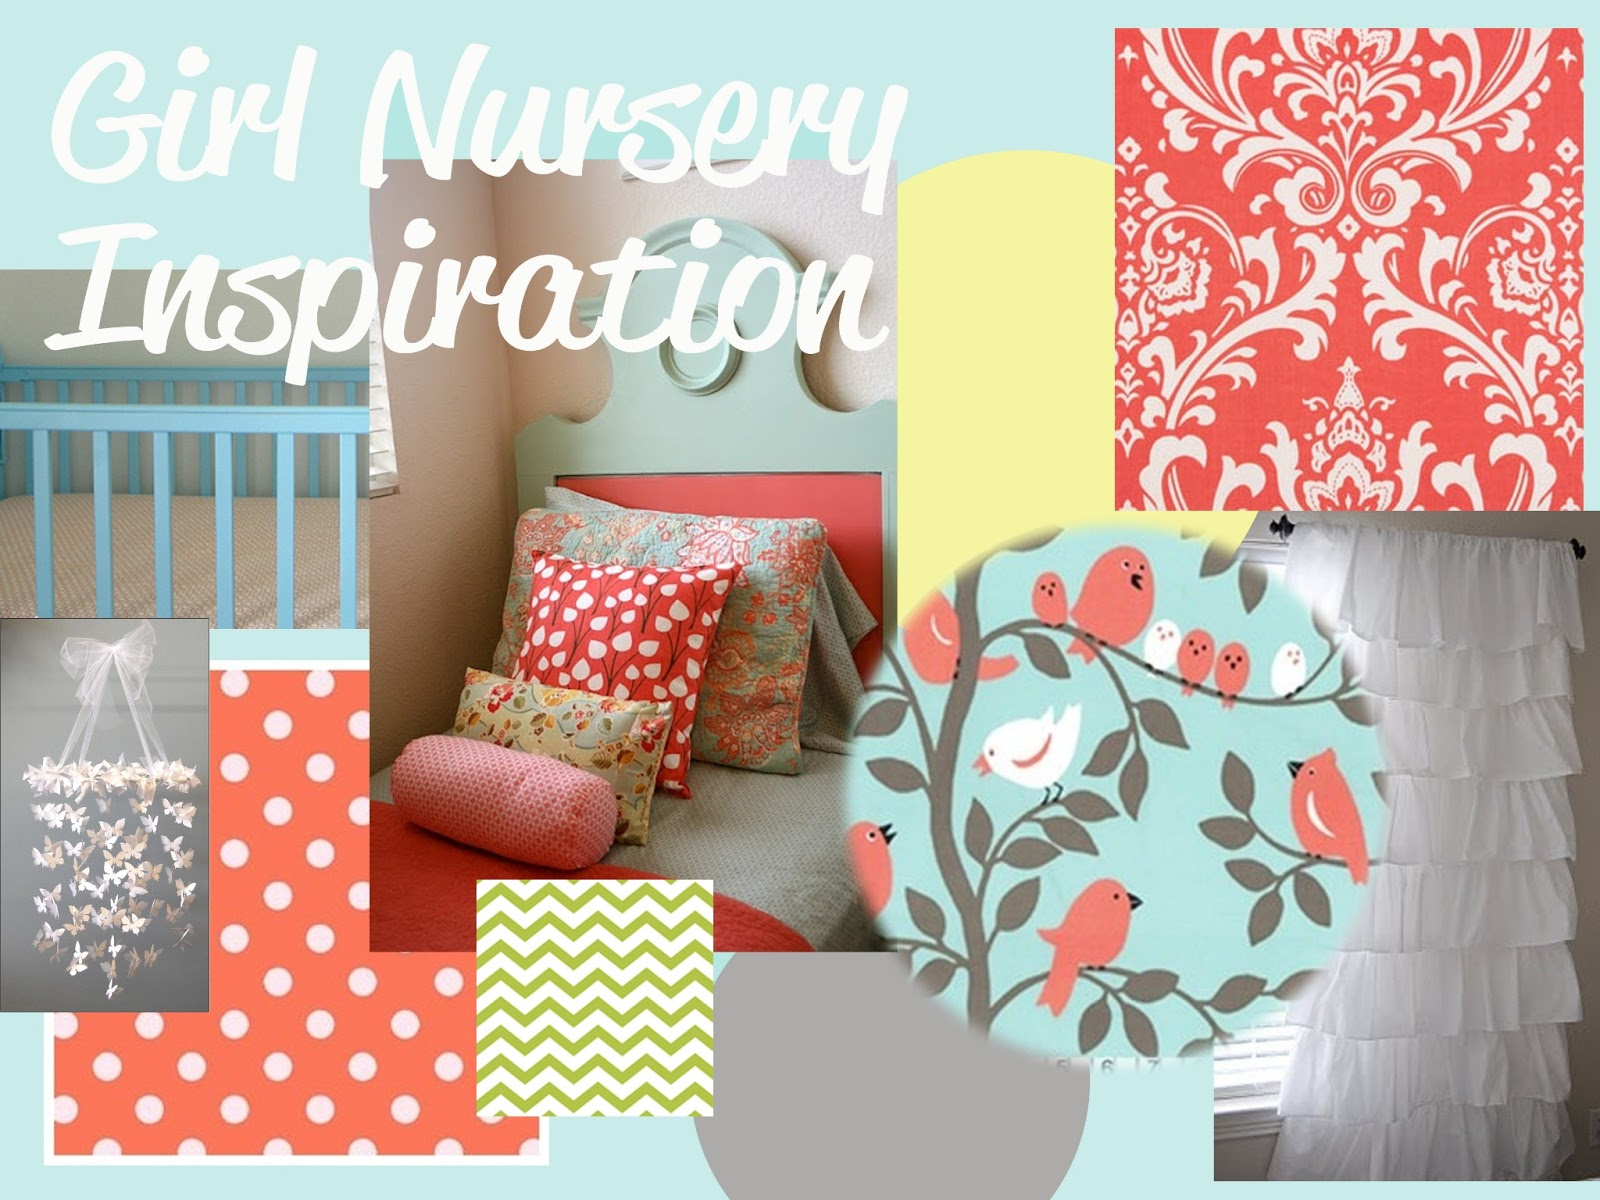 A Baby On The Way And Nursery Inspiration Boards